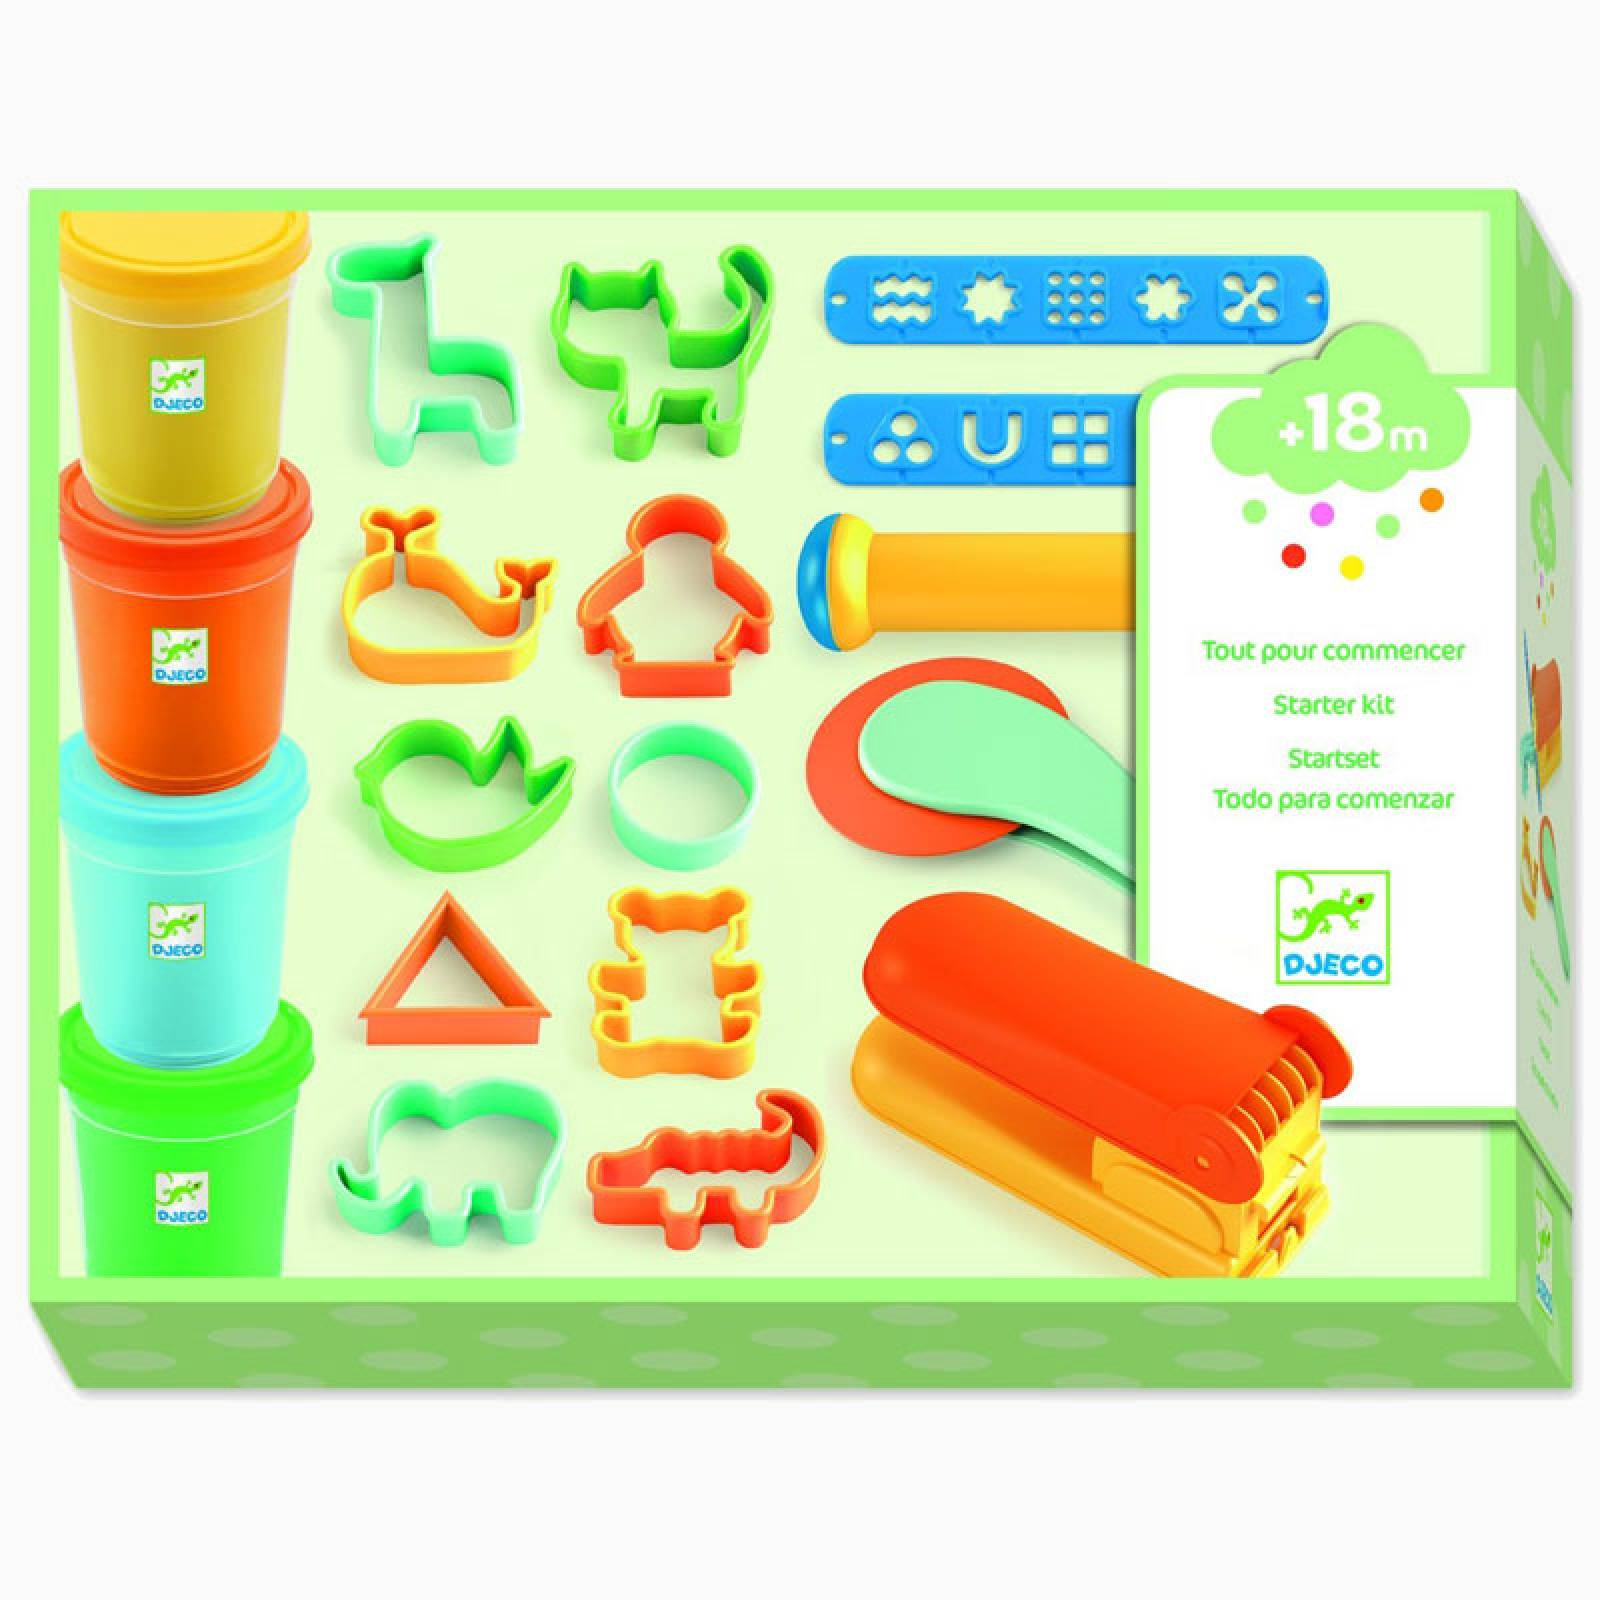 Modelling Clay Starter Set By Djeco 18m+